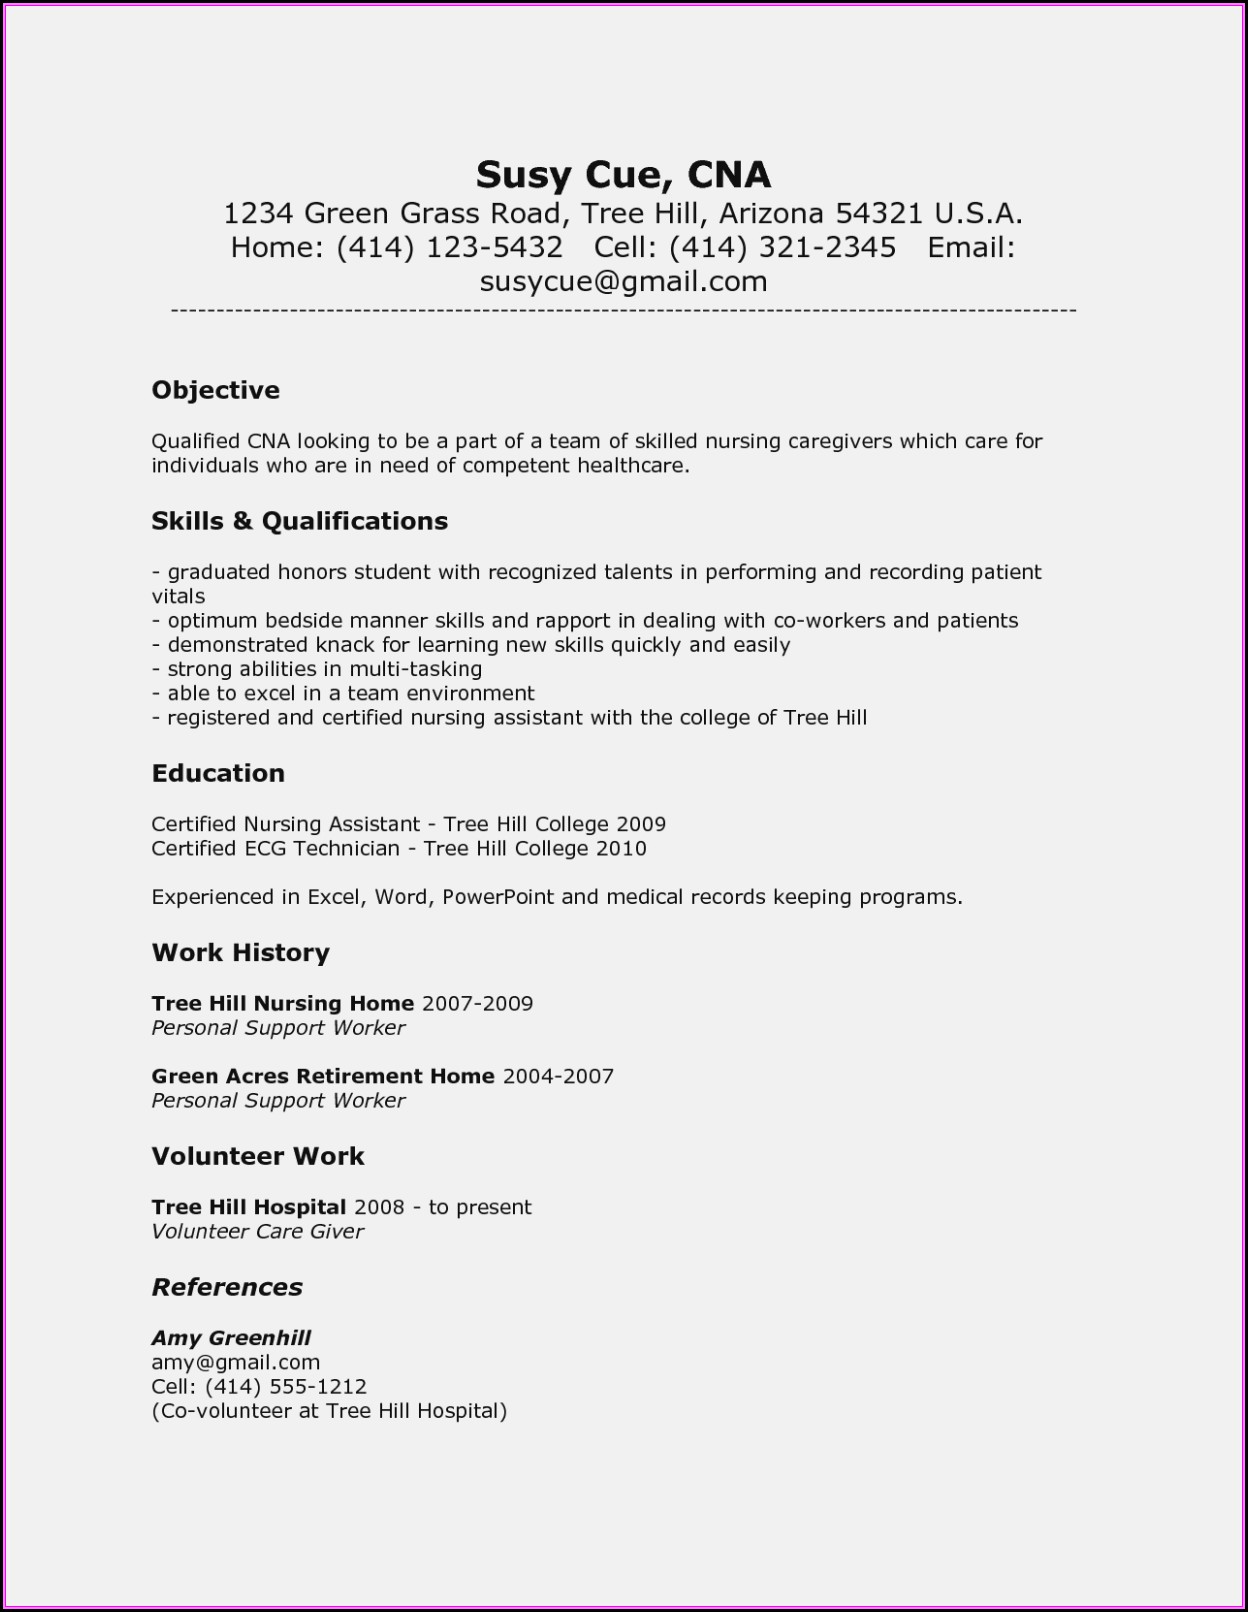 Resume Cna Job Description